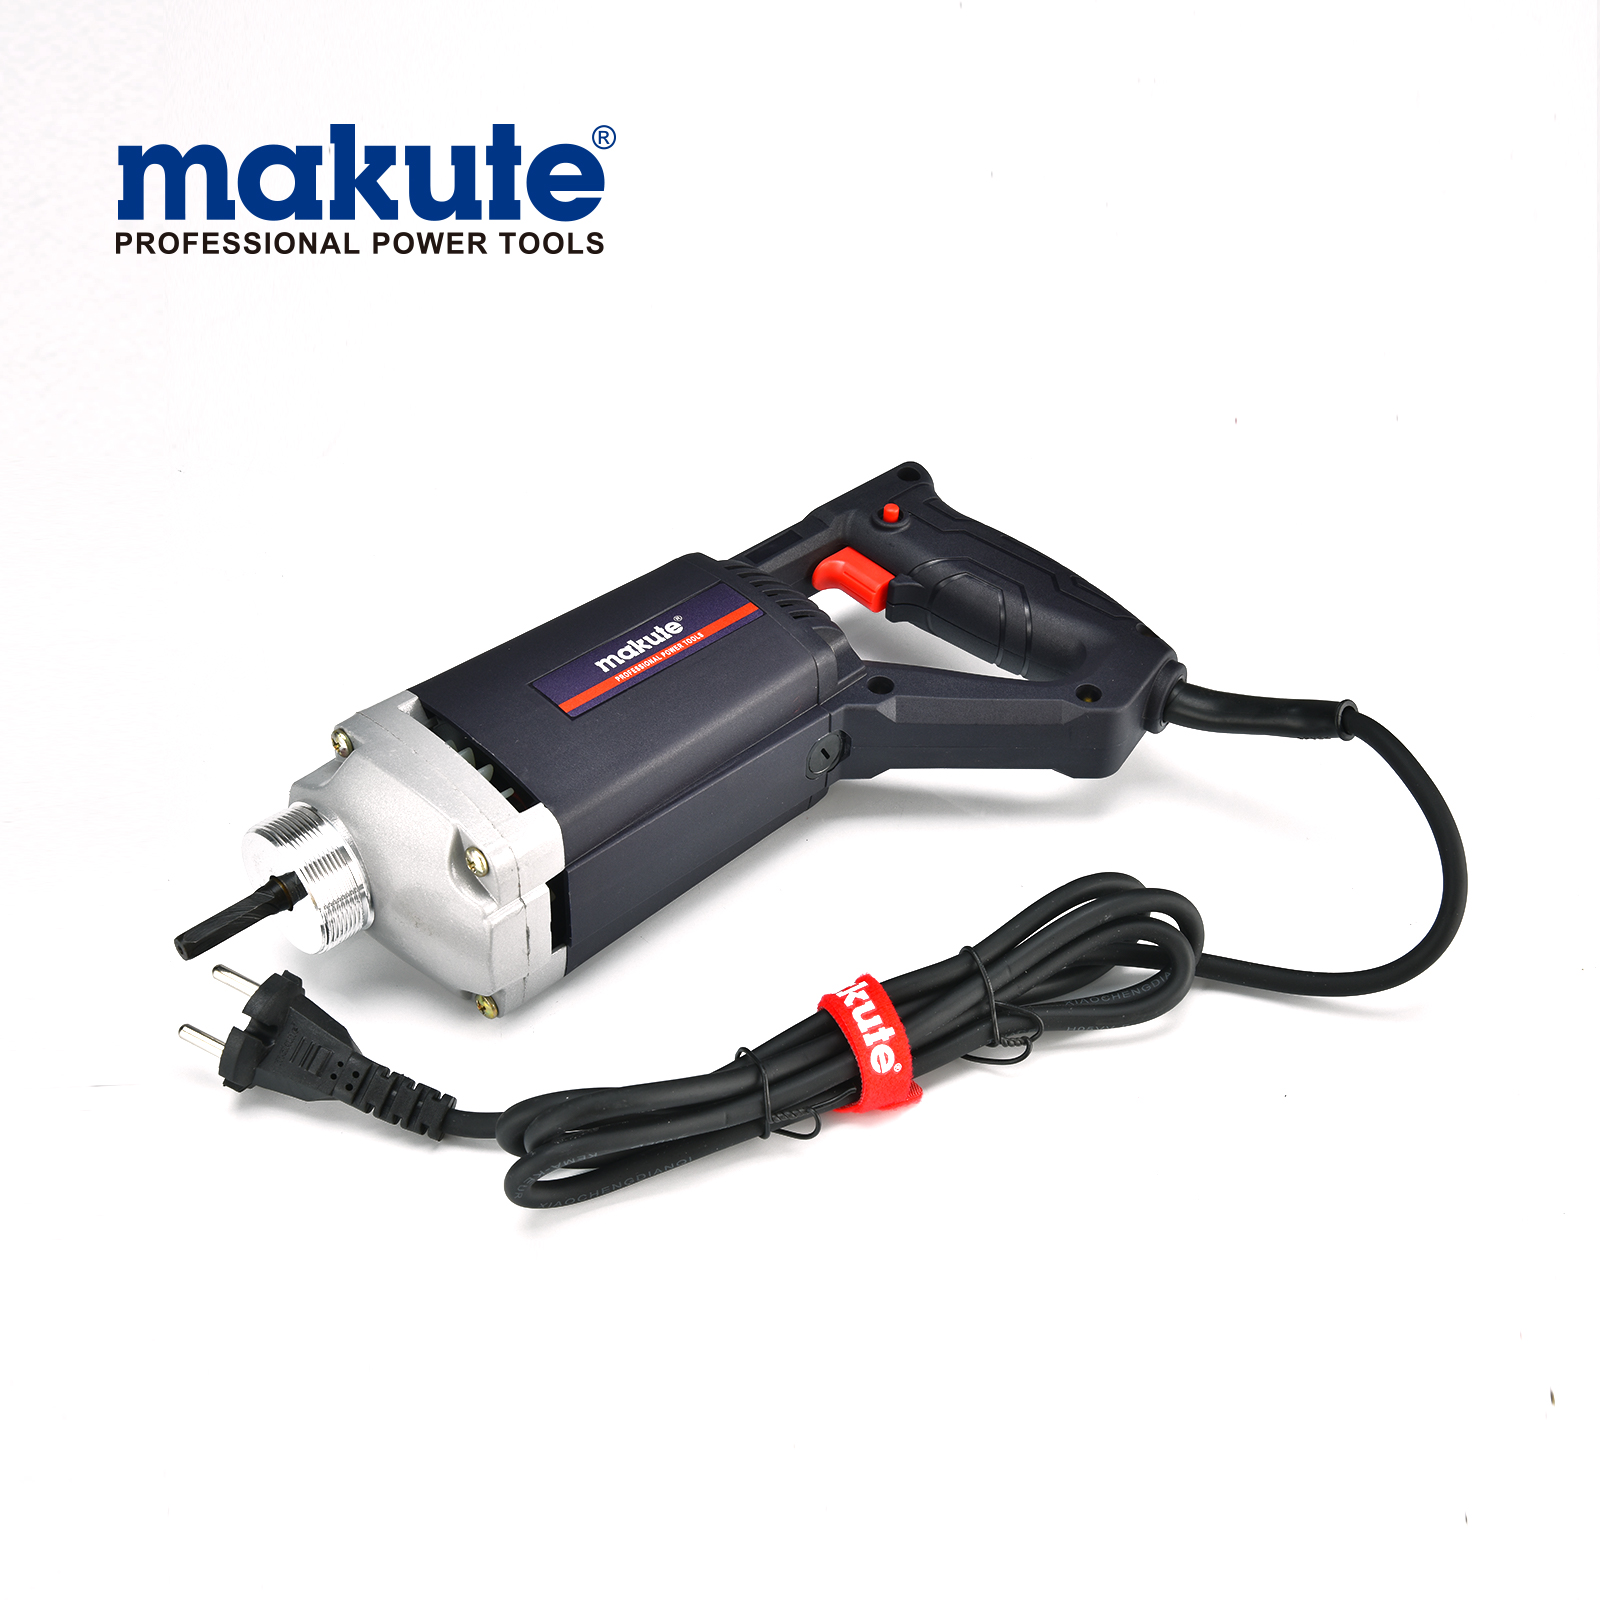 Makute High quality 800w Portable new elcetric Concrete vibrator